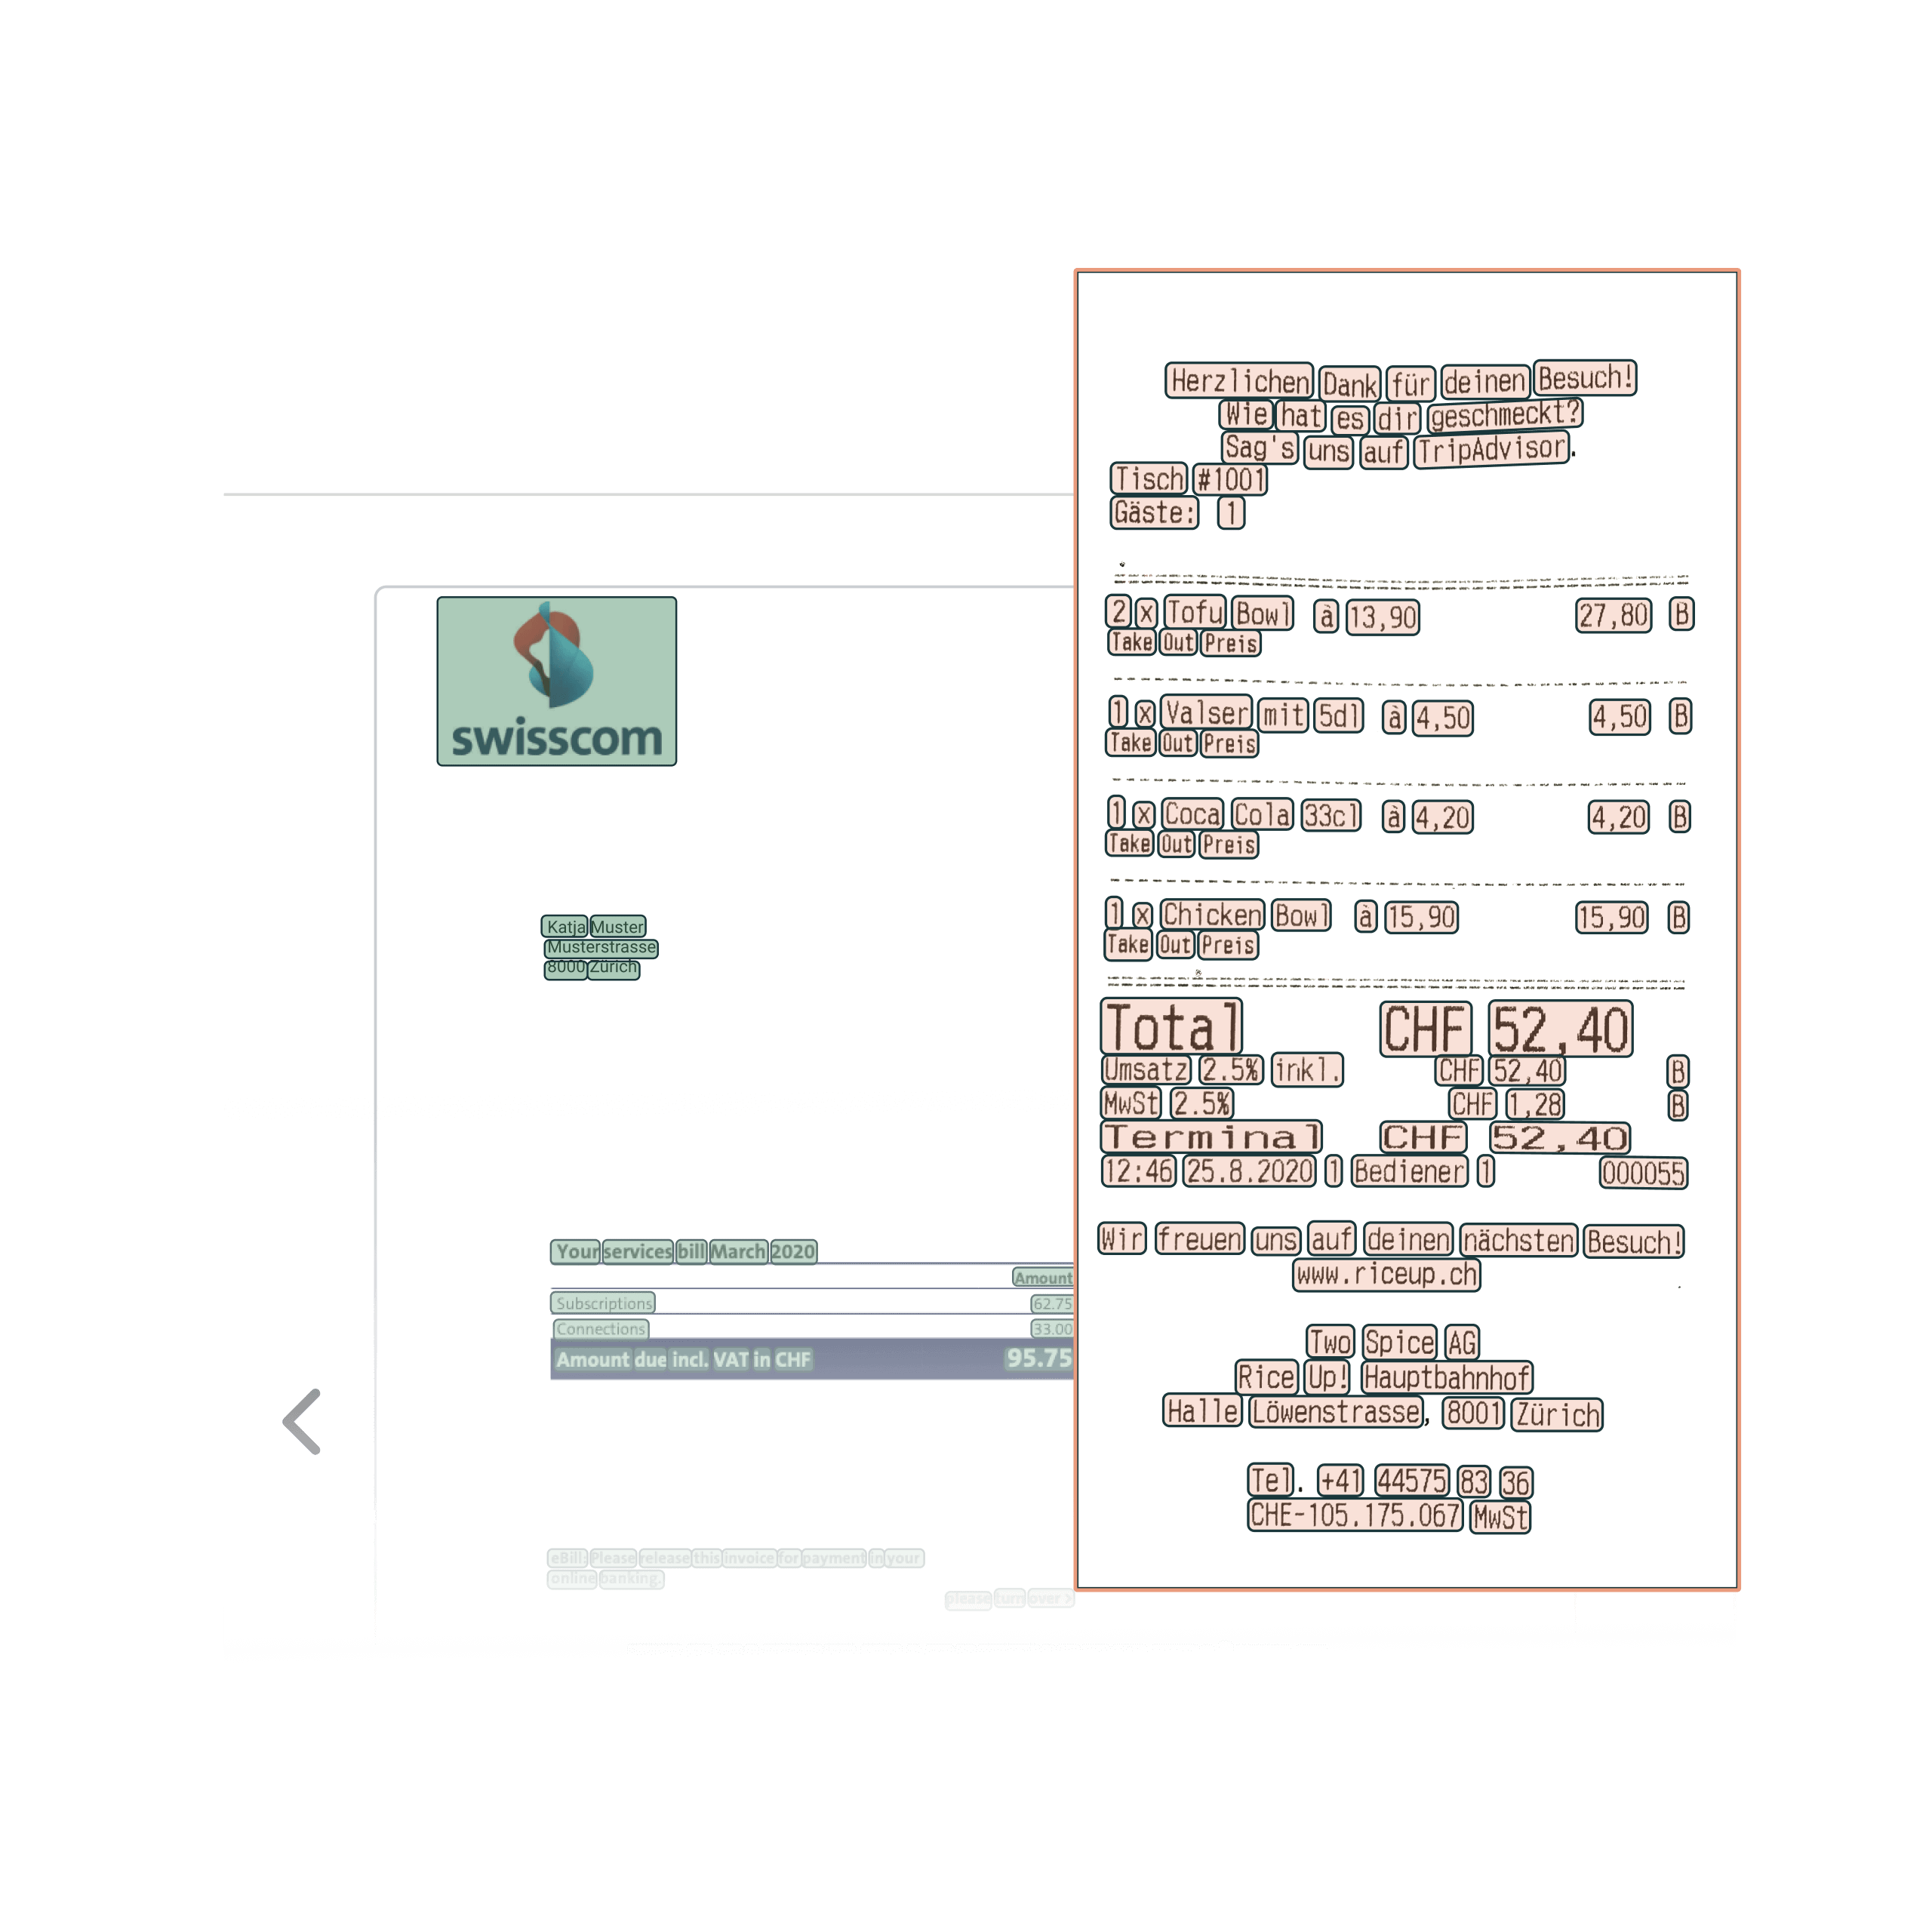 Yokoy spend management step 2: Yokoy's AI software scans and reads out the scanned invoice/receipt